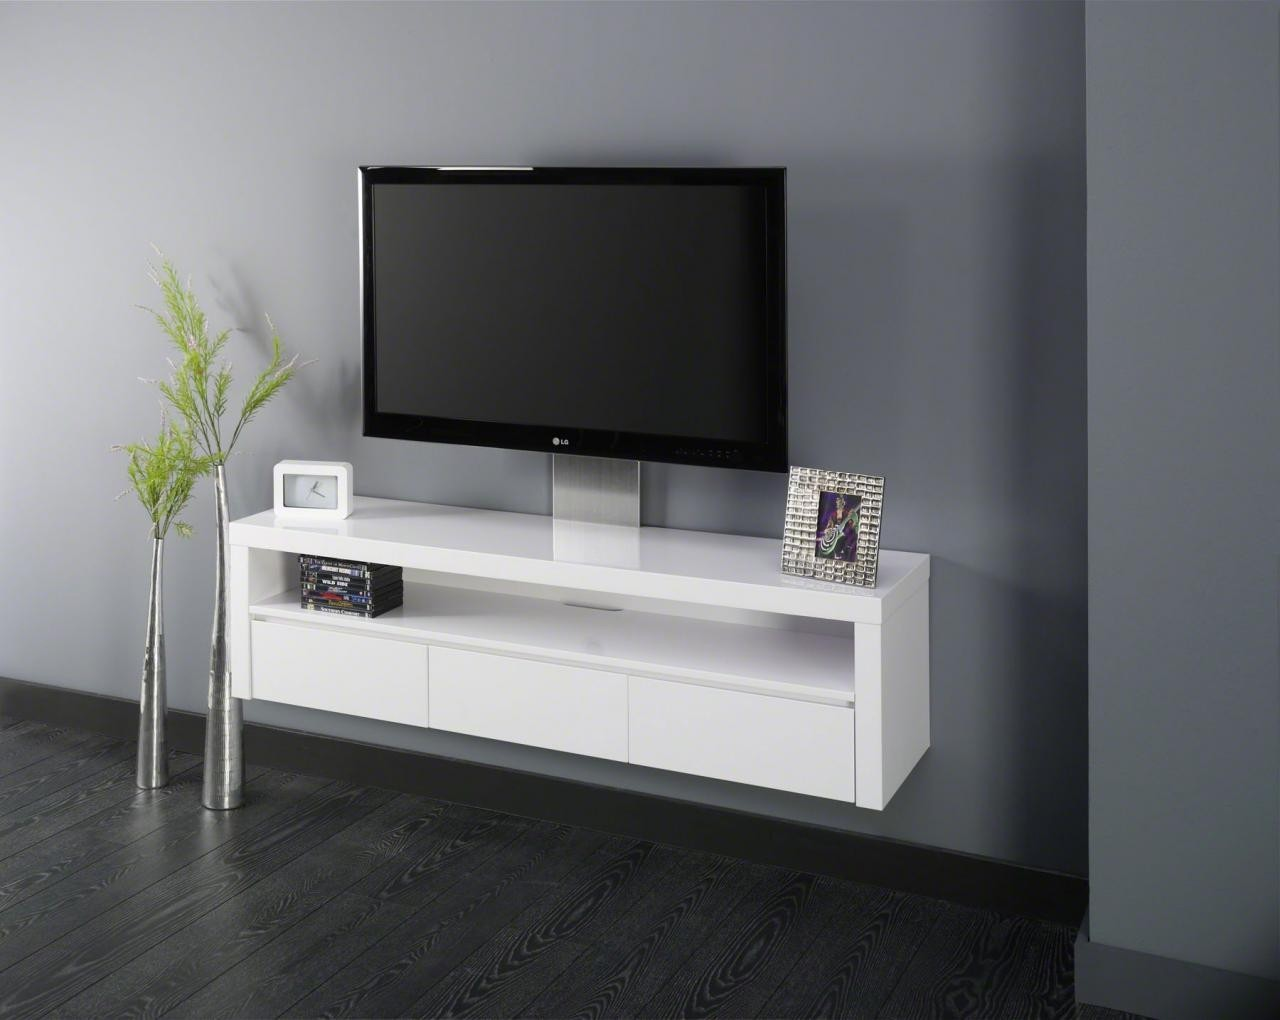 meuble tv suspendu blanc laque serena zd1 m tv d. Black Bedroom Furniture Sets. Home Design Ideas